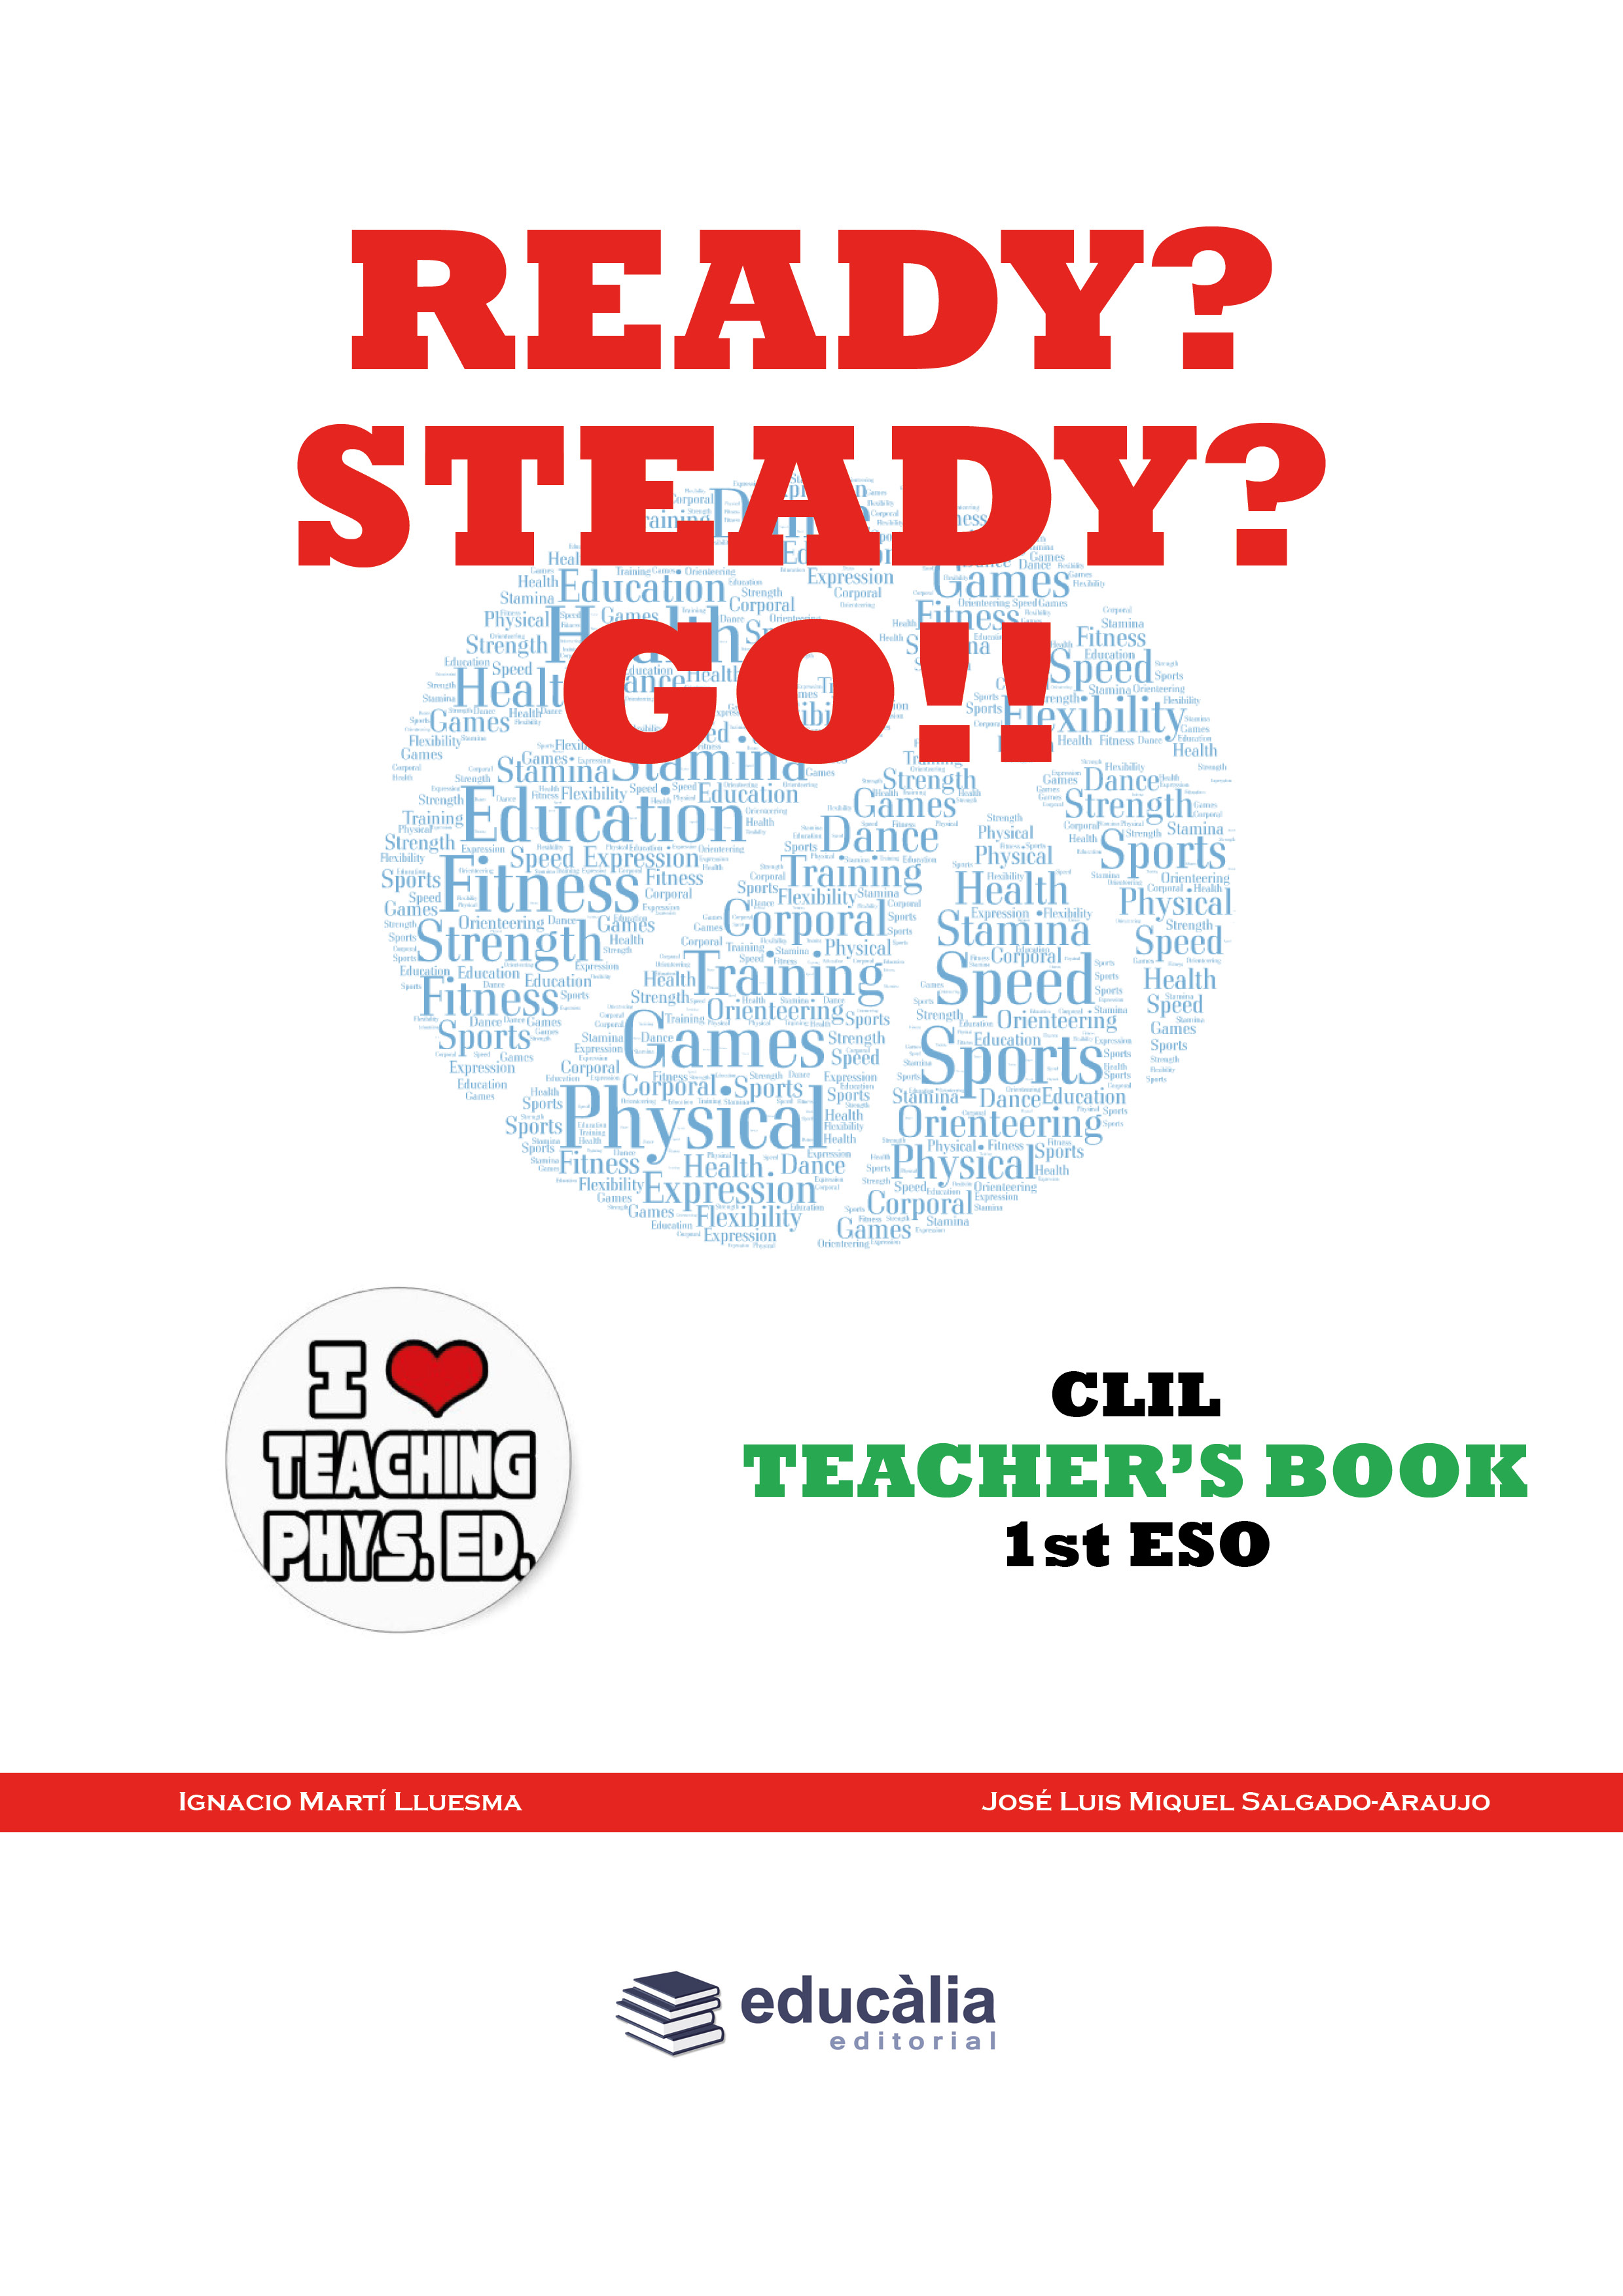 Teacher's Book: Ready? Steady? Go!!